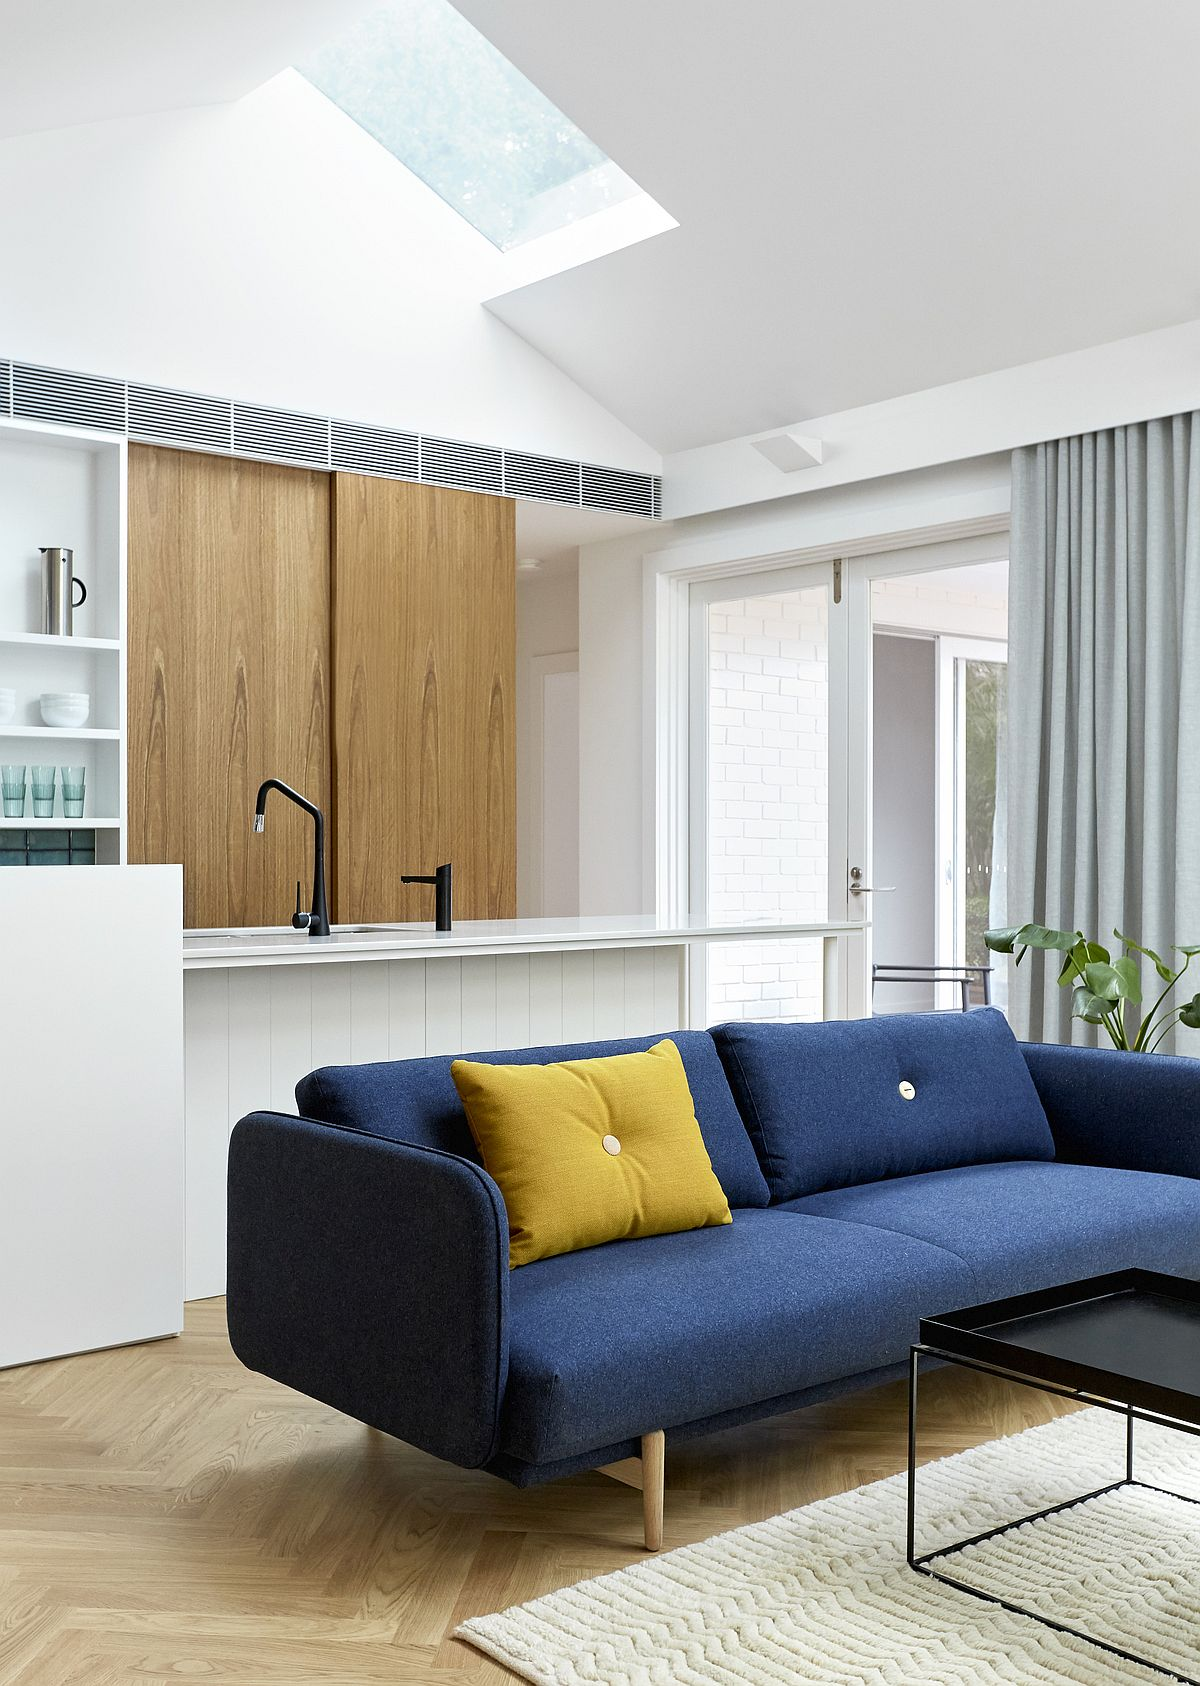 Scanidinavian-style-interior-with-blue-sectional-and-a-bright-yellow-accent-pillow